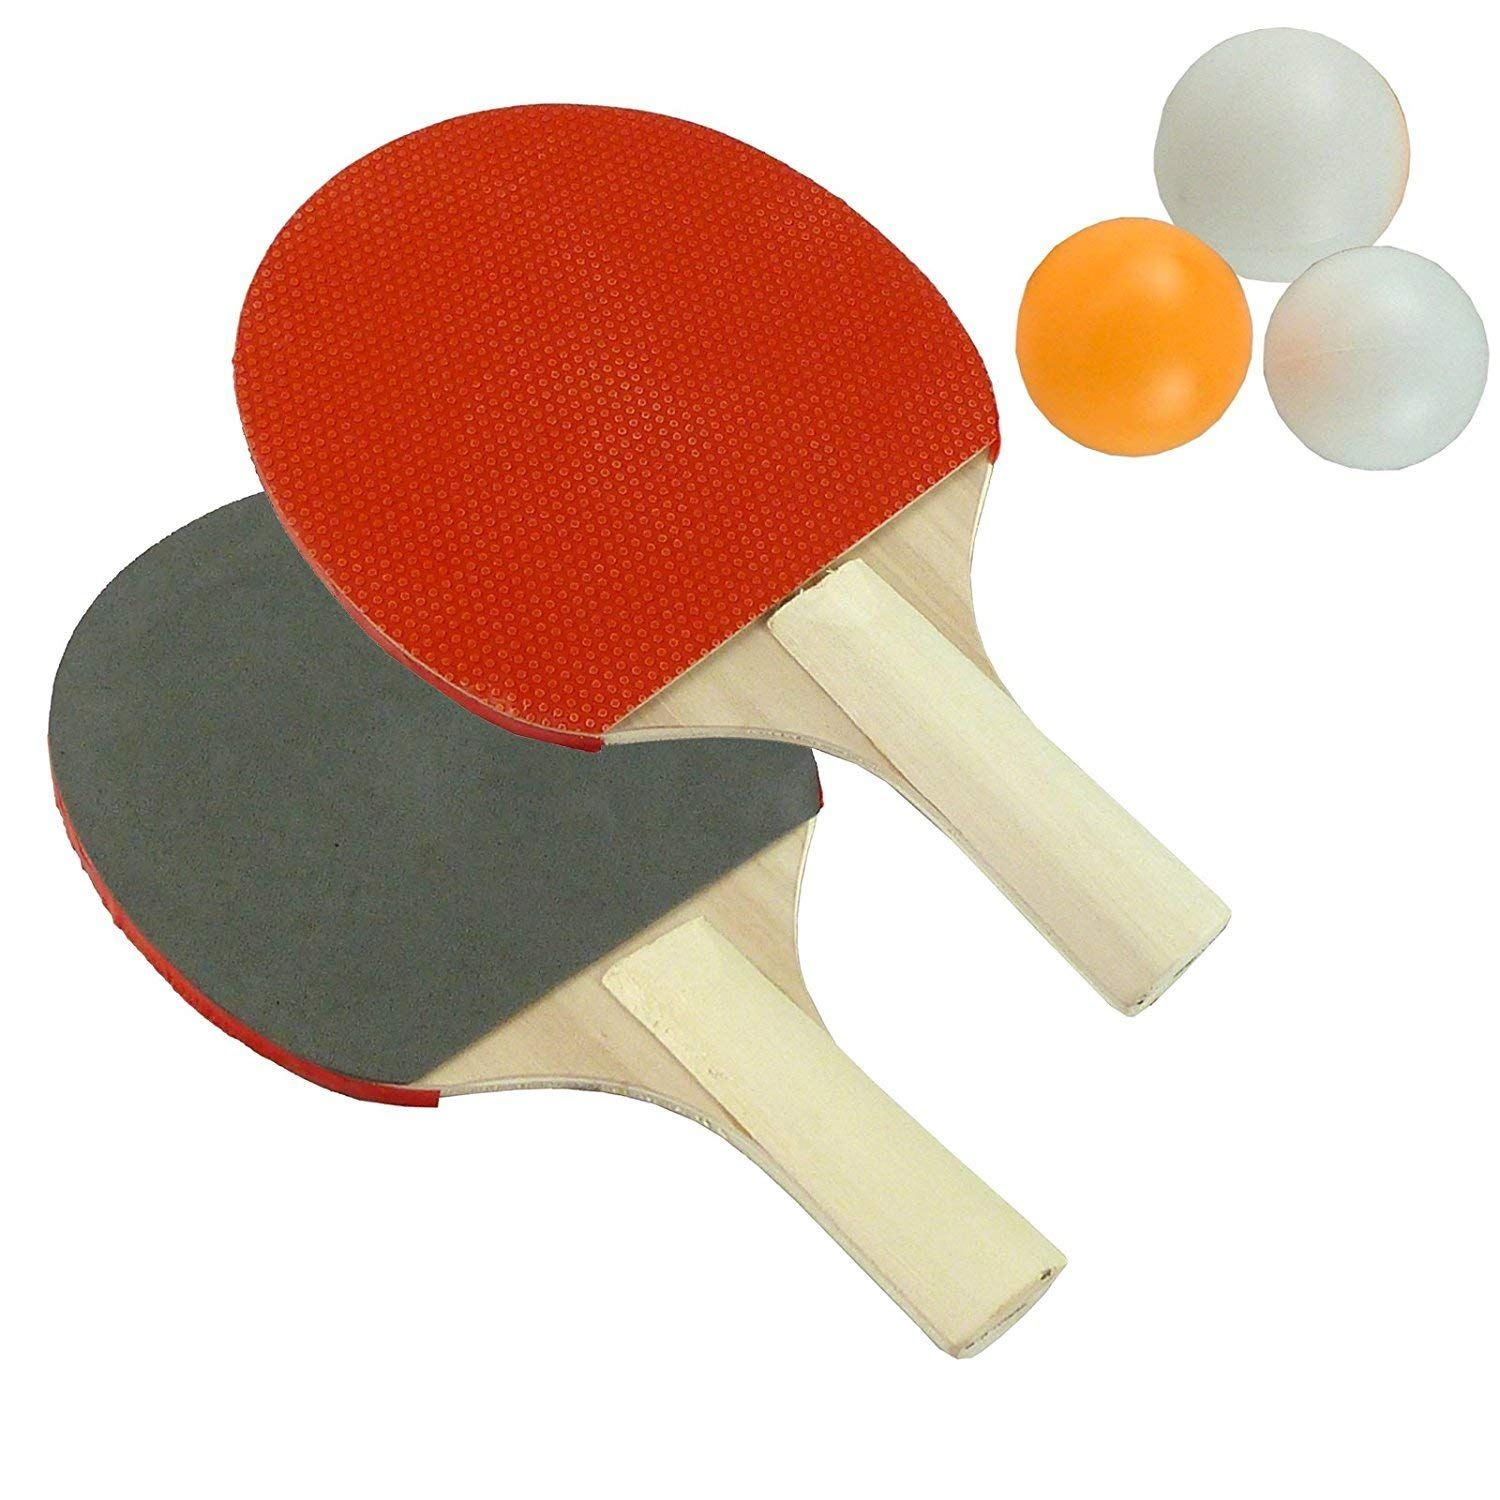 Earn Money Online With Interviews Through Ping Pong Up To 50 Per Hour Table Tennis Ping Pong Table Tennis Player